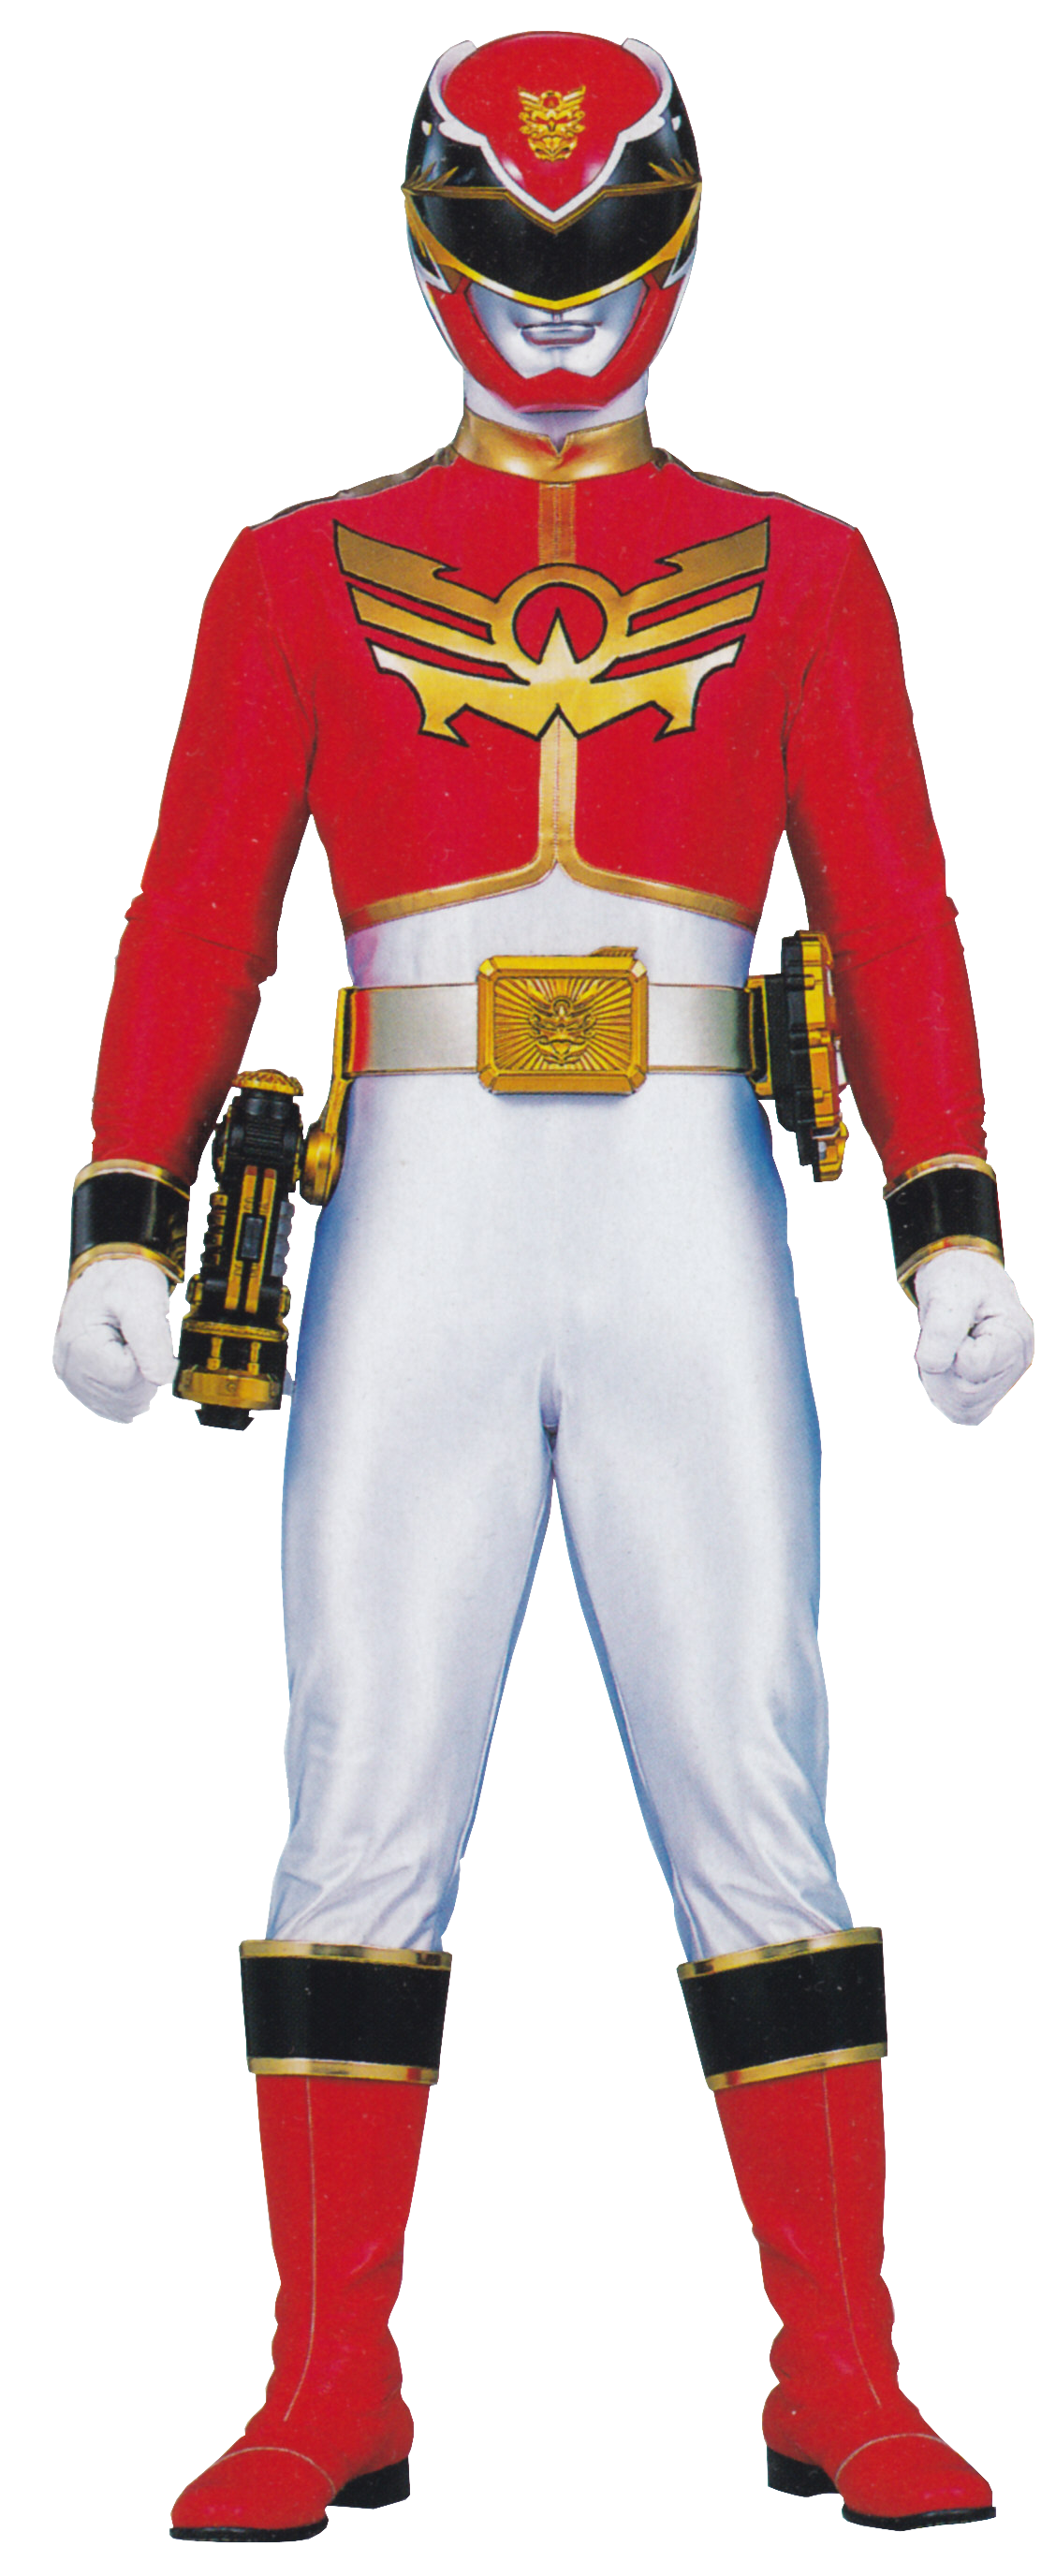 Red ranger png. I searched for power